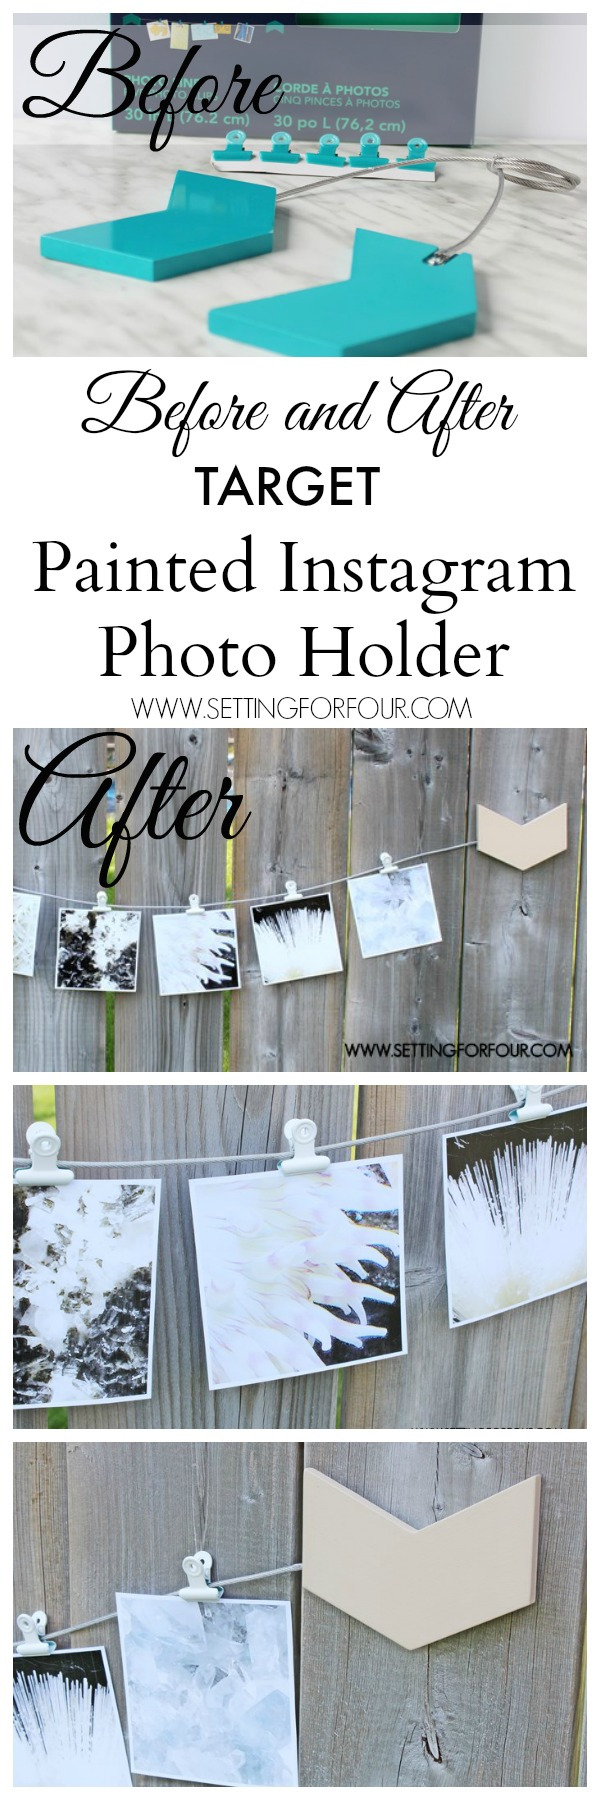 Before and After: Easy and Quick Painted Photo Holder from Target | www.settingforfour.com